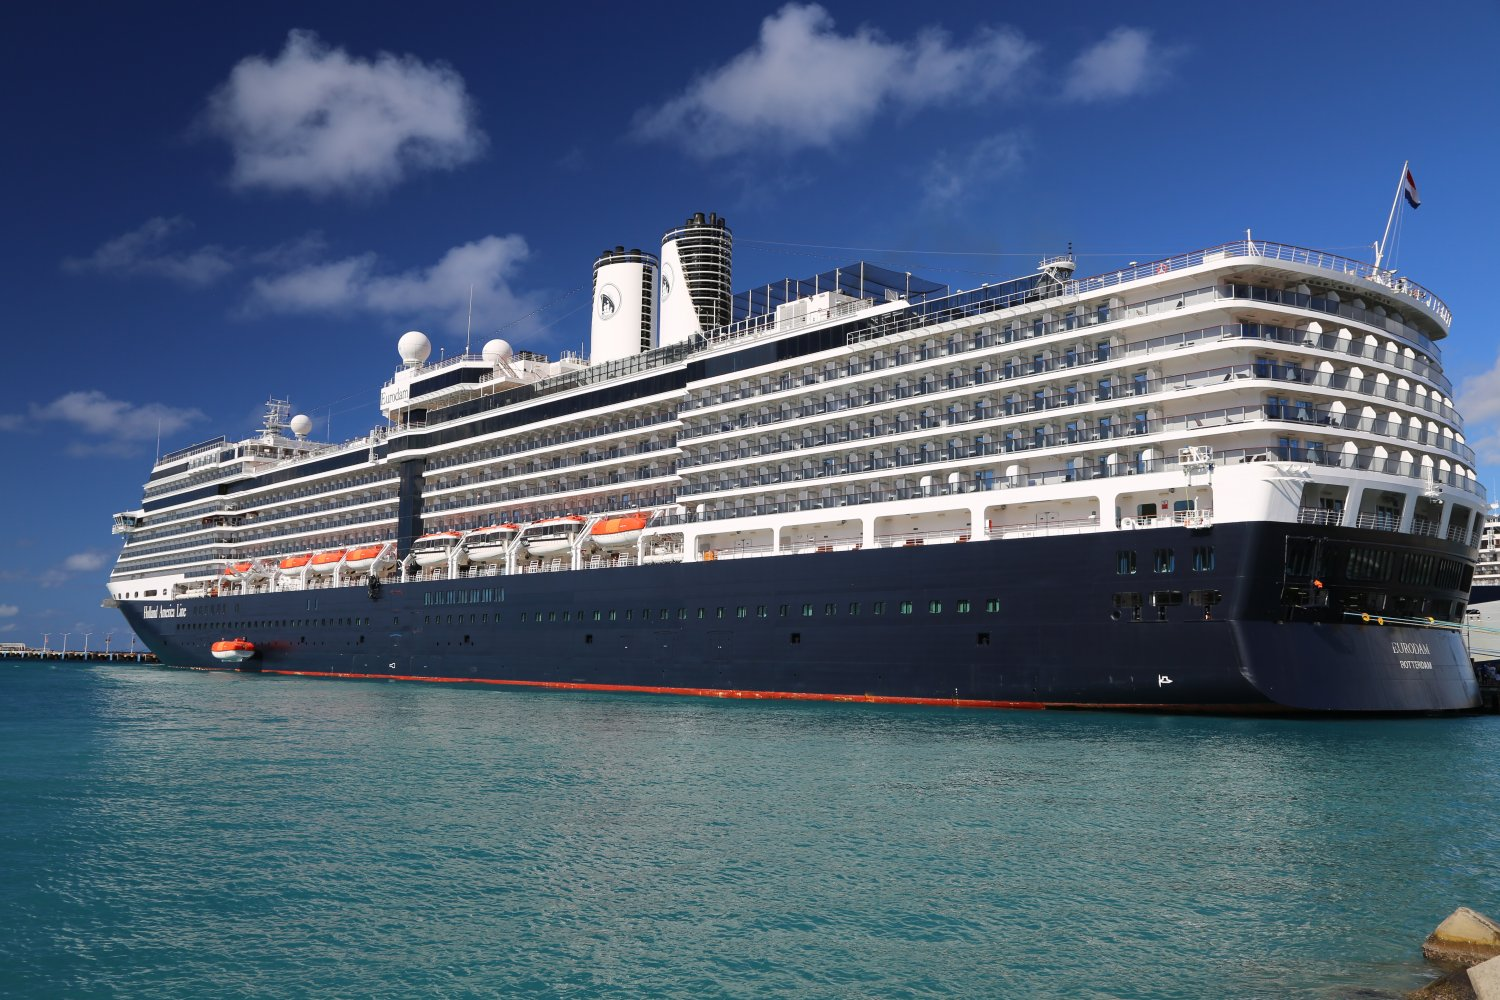 cruise ship holland america Holland america has a long history of traditional cruising on spacious, elegant midsize ships such as the westerdam, oosterdam and eurodam.